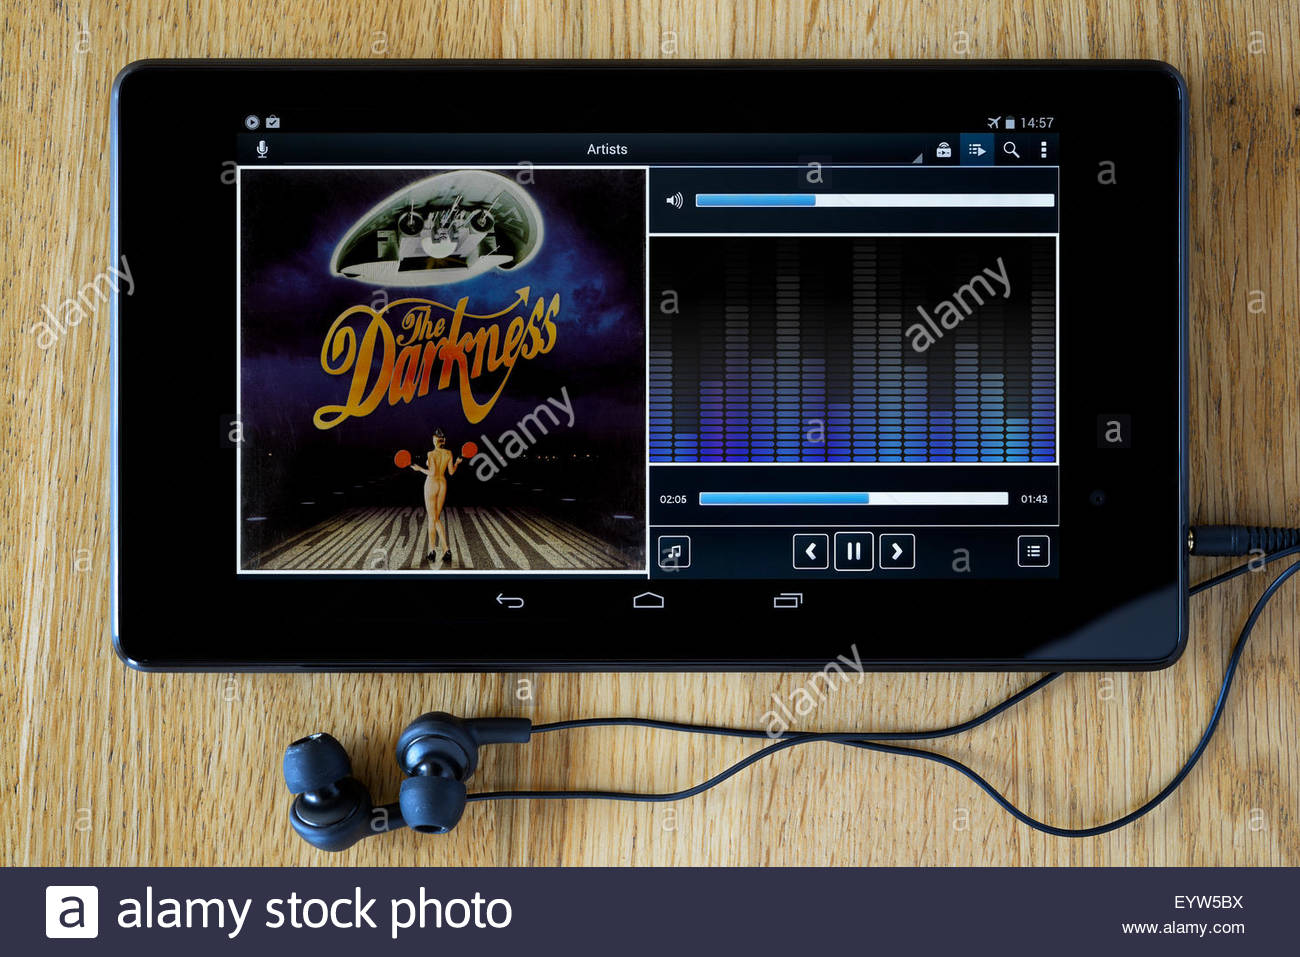 The Darkness 2003 debut album Permission to Land, MP3 album art on PC tablet, England - Stock Image